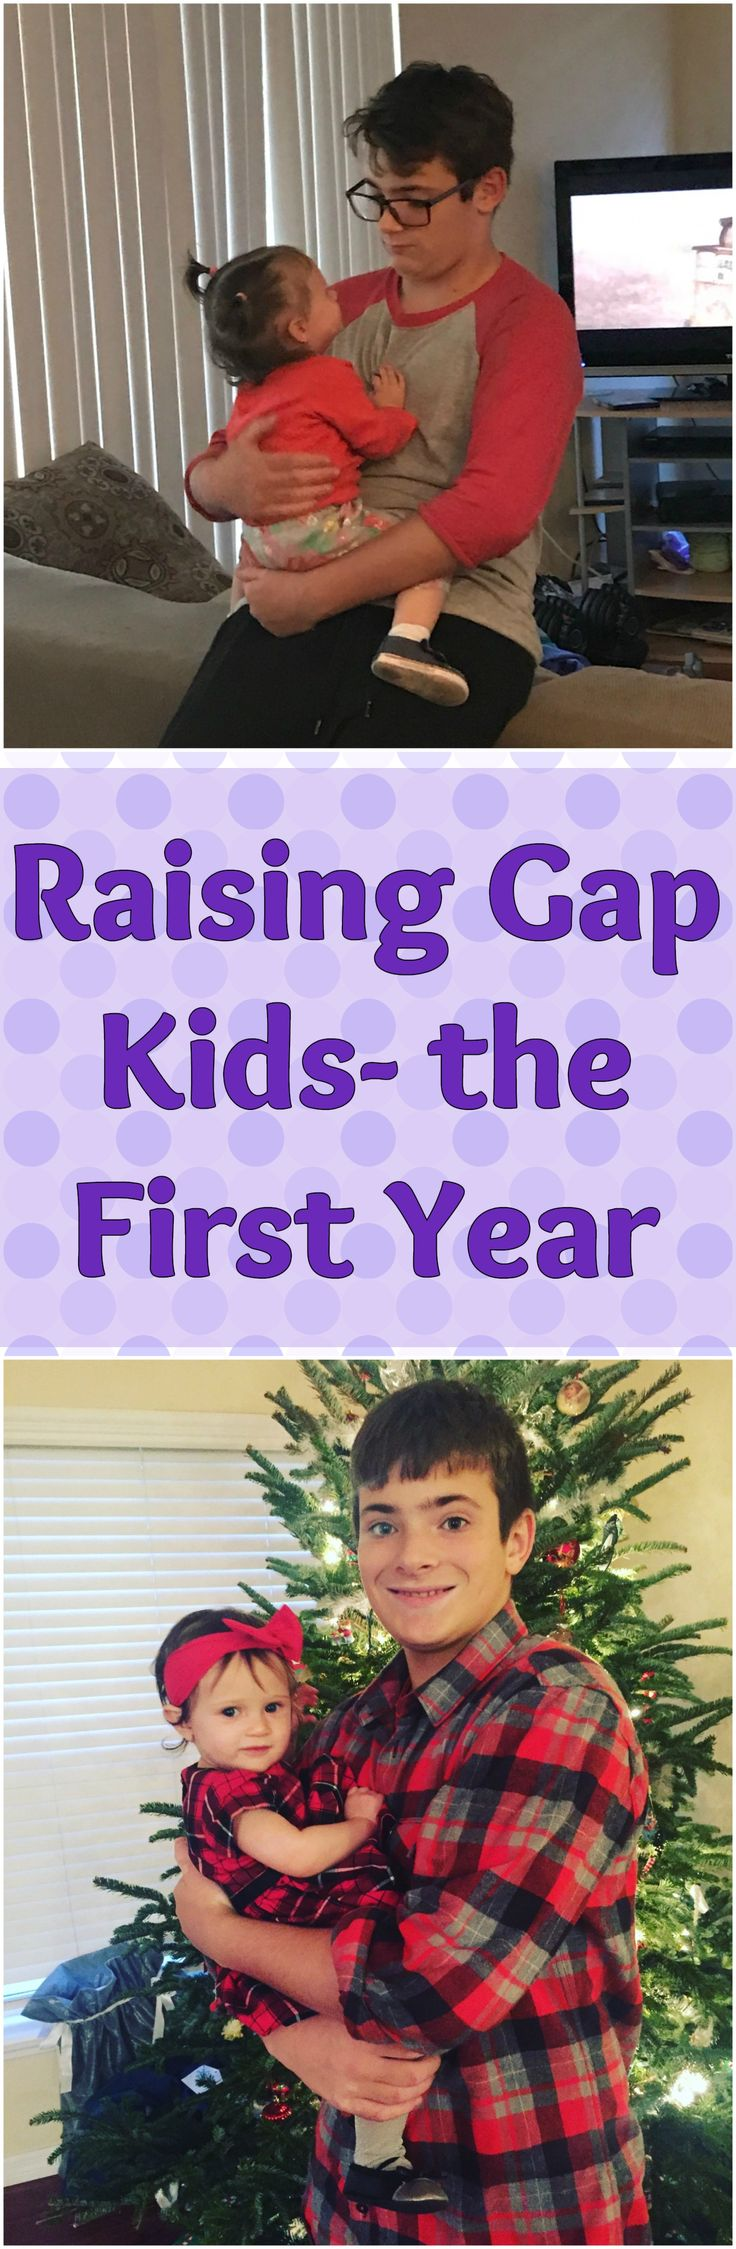 Raising Gap Kids - The First Year - after finding out I was expecting my daughter I immediately began worrying about the relationship she would have with her brother (and vice versa). Here are tips with what I've learned over the first year.